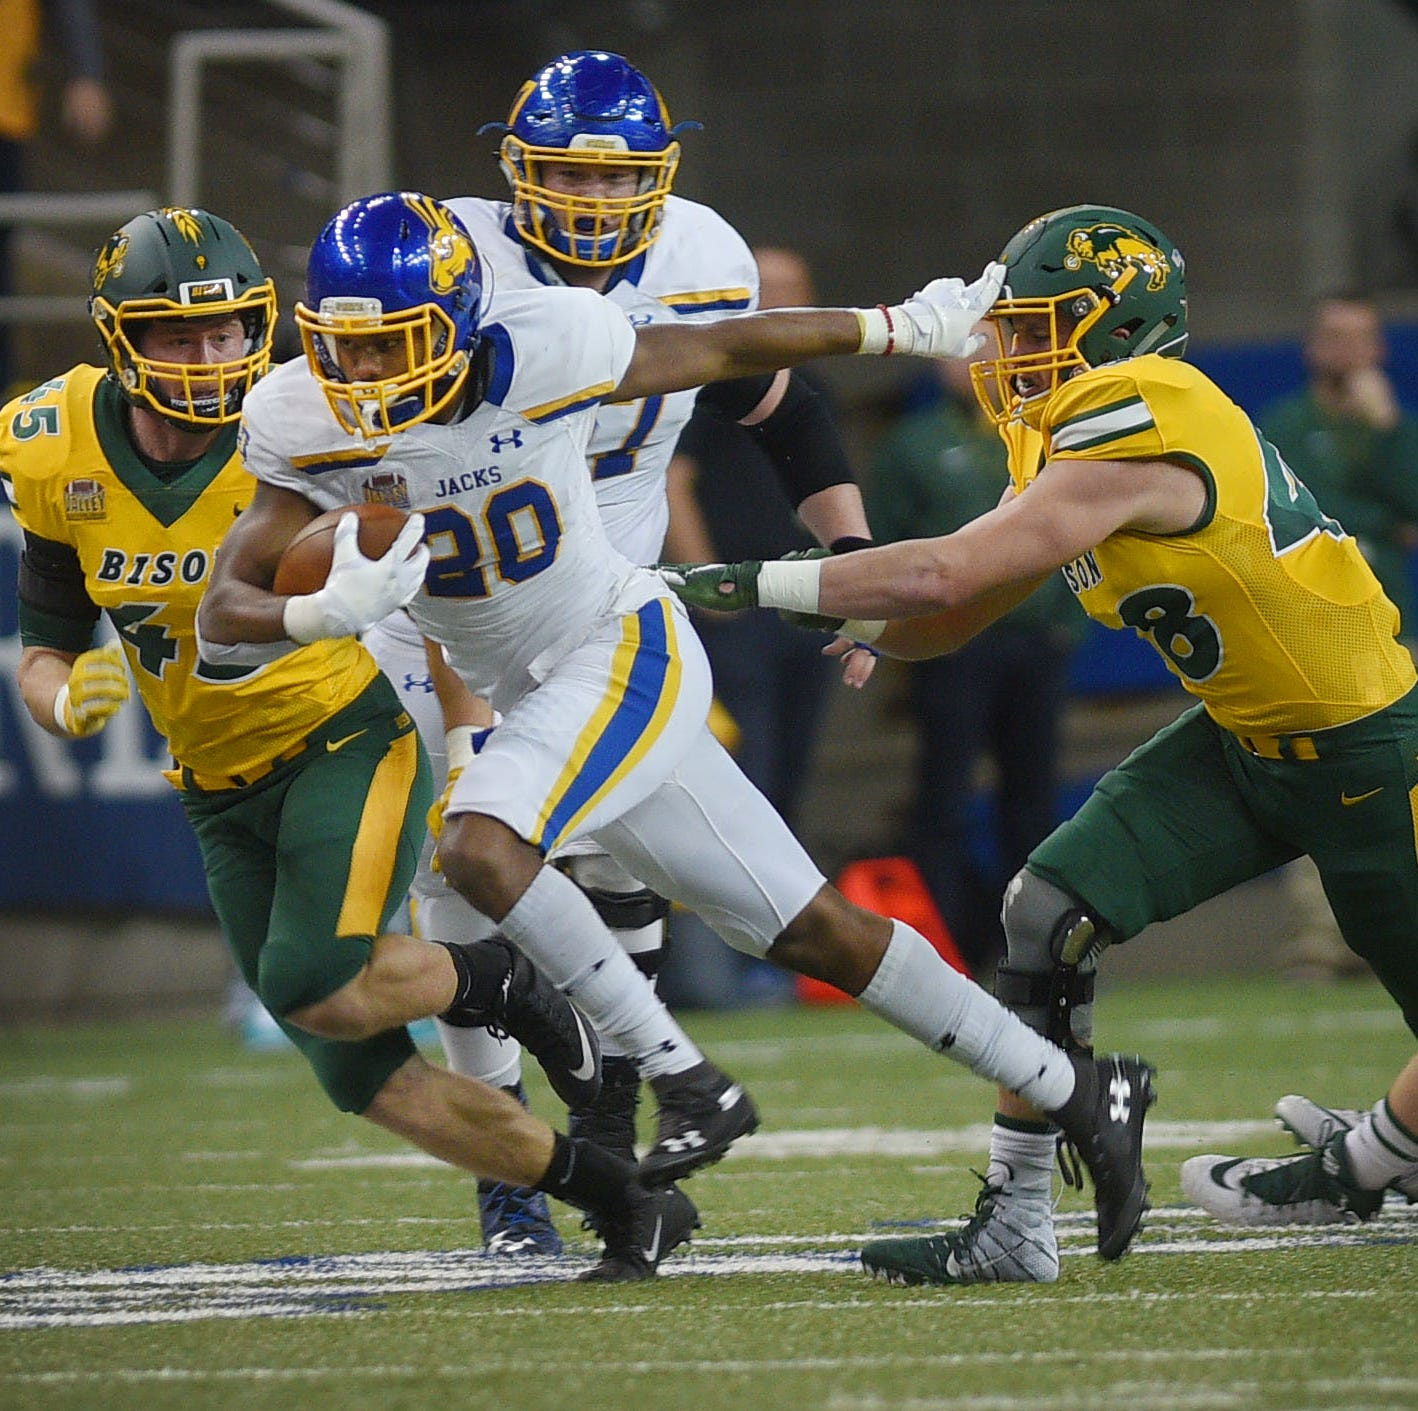 FCS playoffs: South Dakota State falls to top-ranked North Dakota State in semifinals